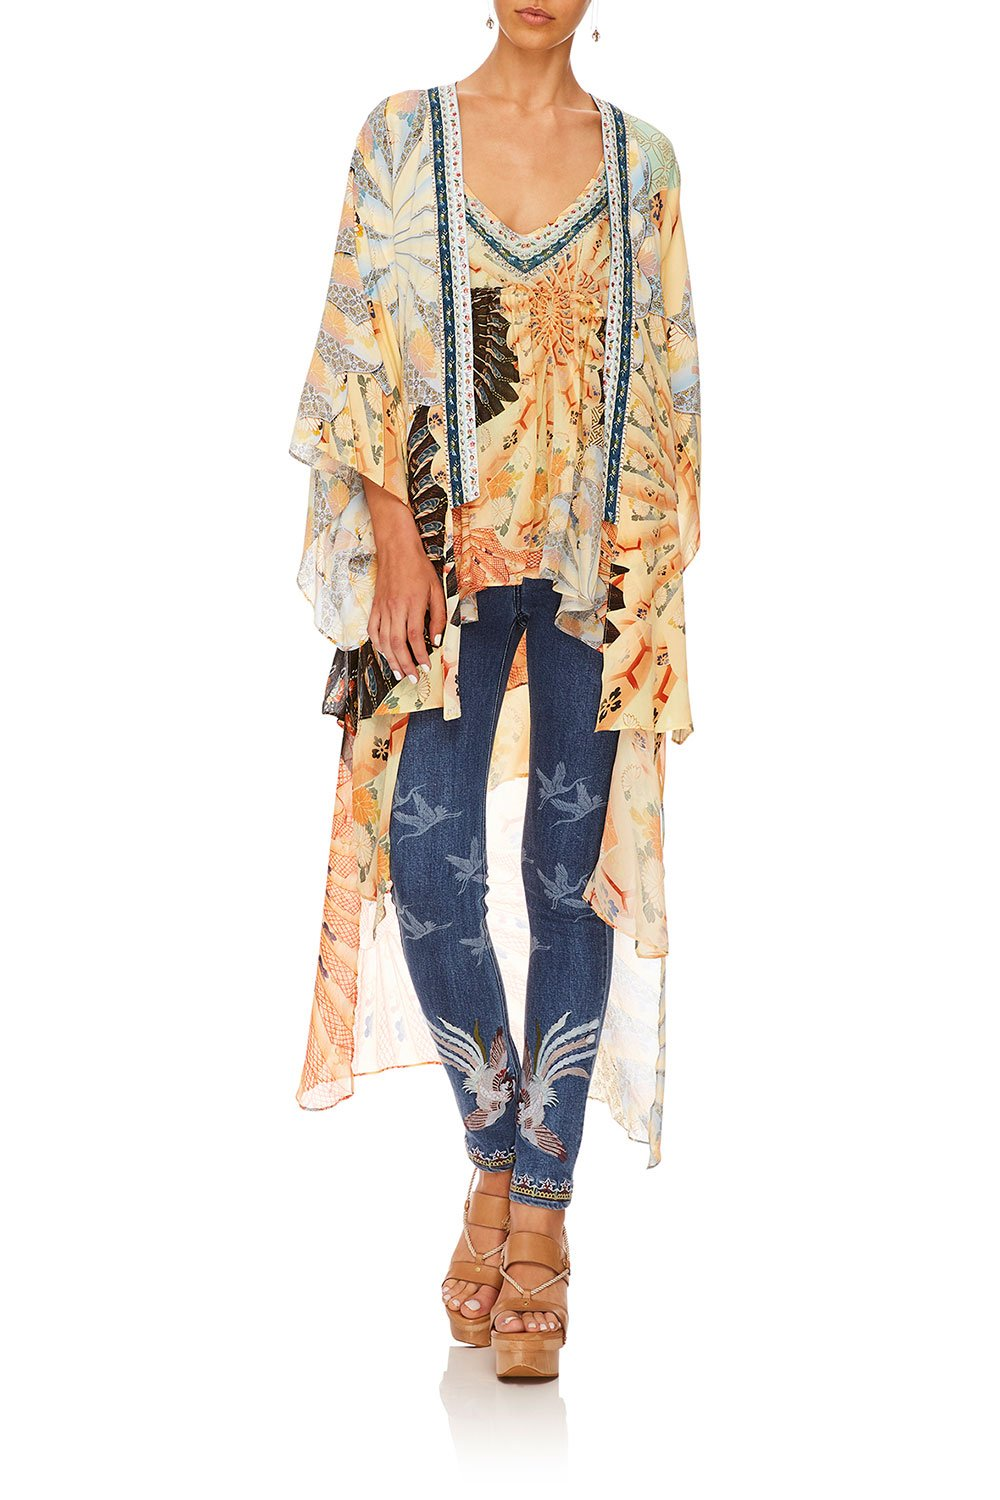 CAMILLA FOR THE FANS KIMONO W LONG UNDERLAY